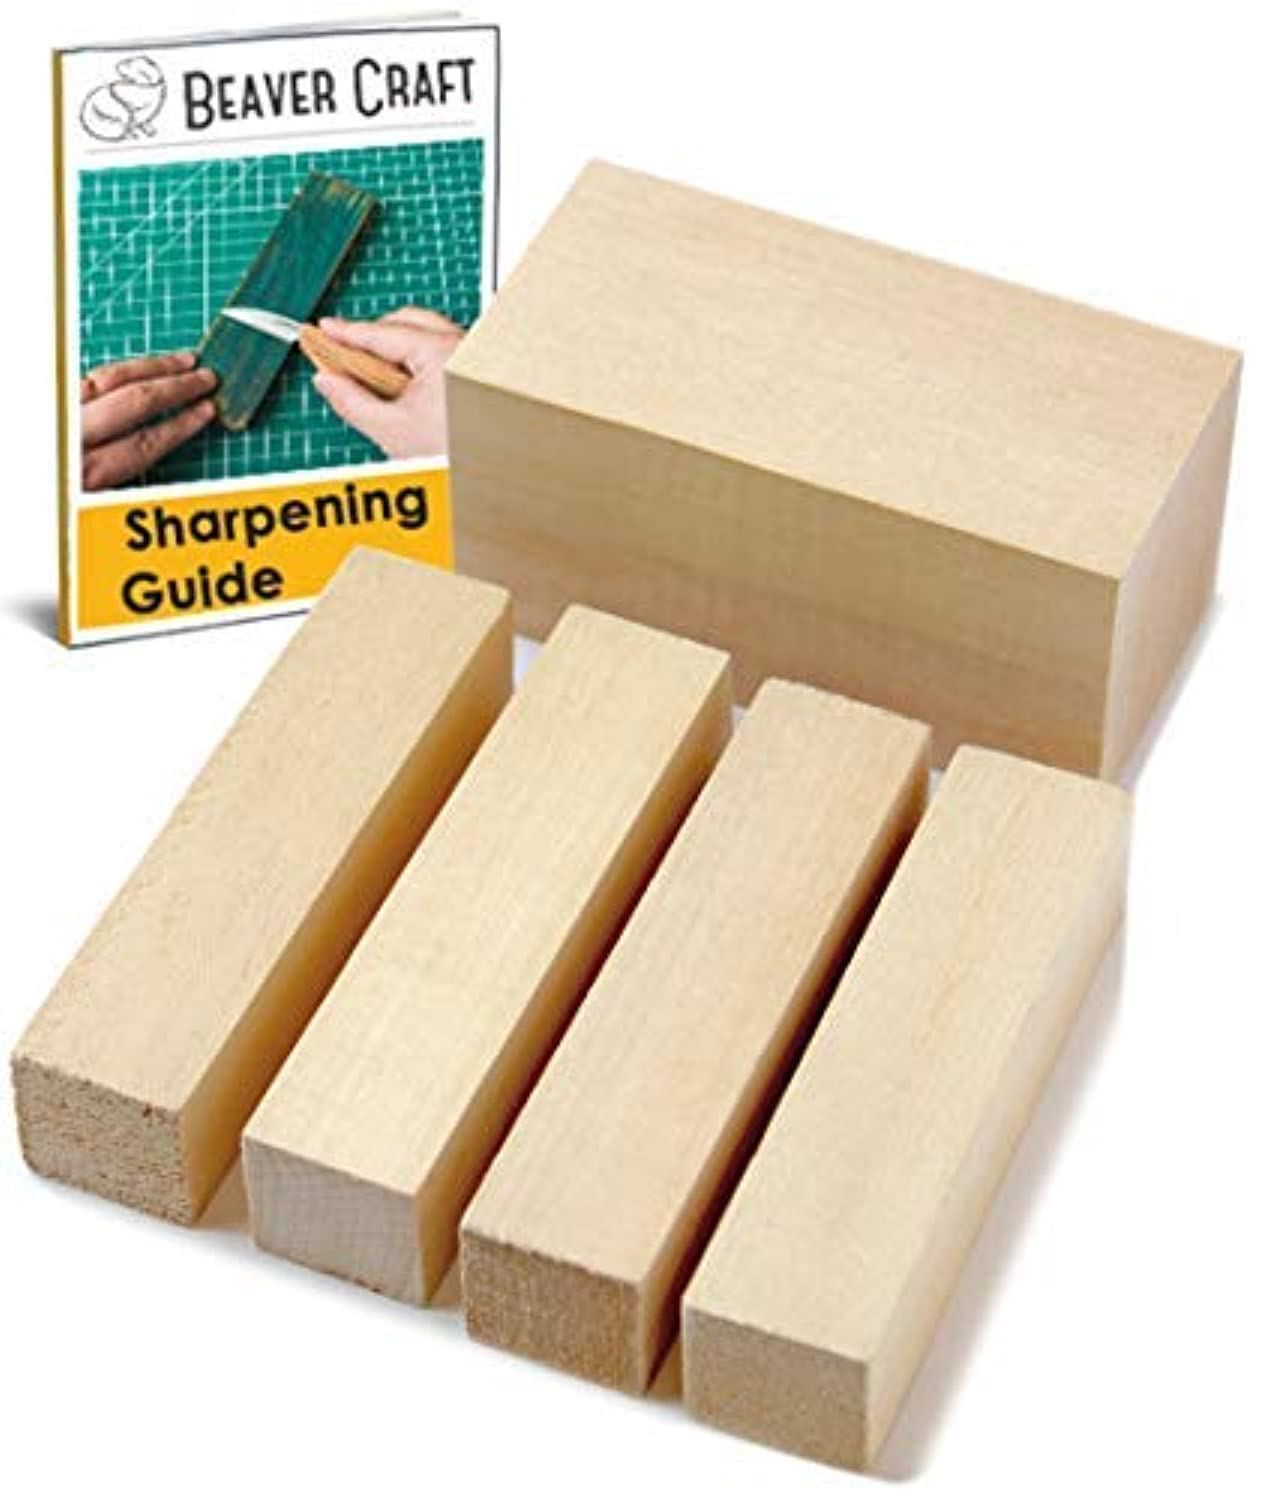 Premium Basswood Wood Carving Blocks Kit - Whittling Blanks Beginners Soft Wood Carving Block Set - Hobby Kit for Adults Creativity for Kids - Unfinished 5 Large Pieces Wood